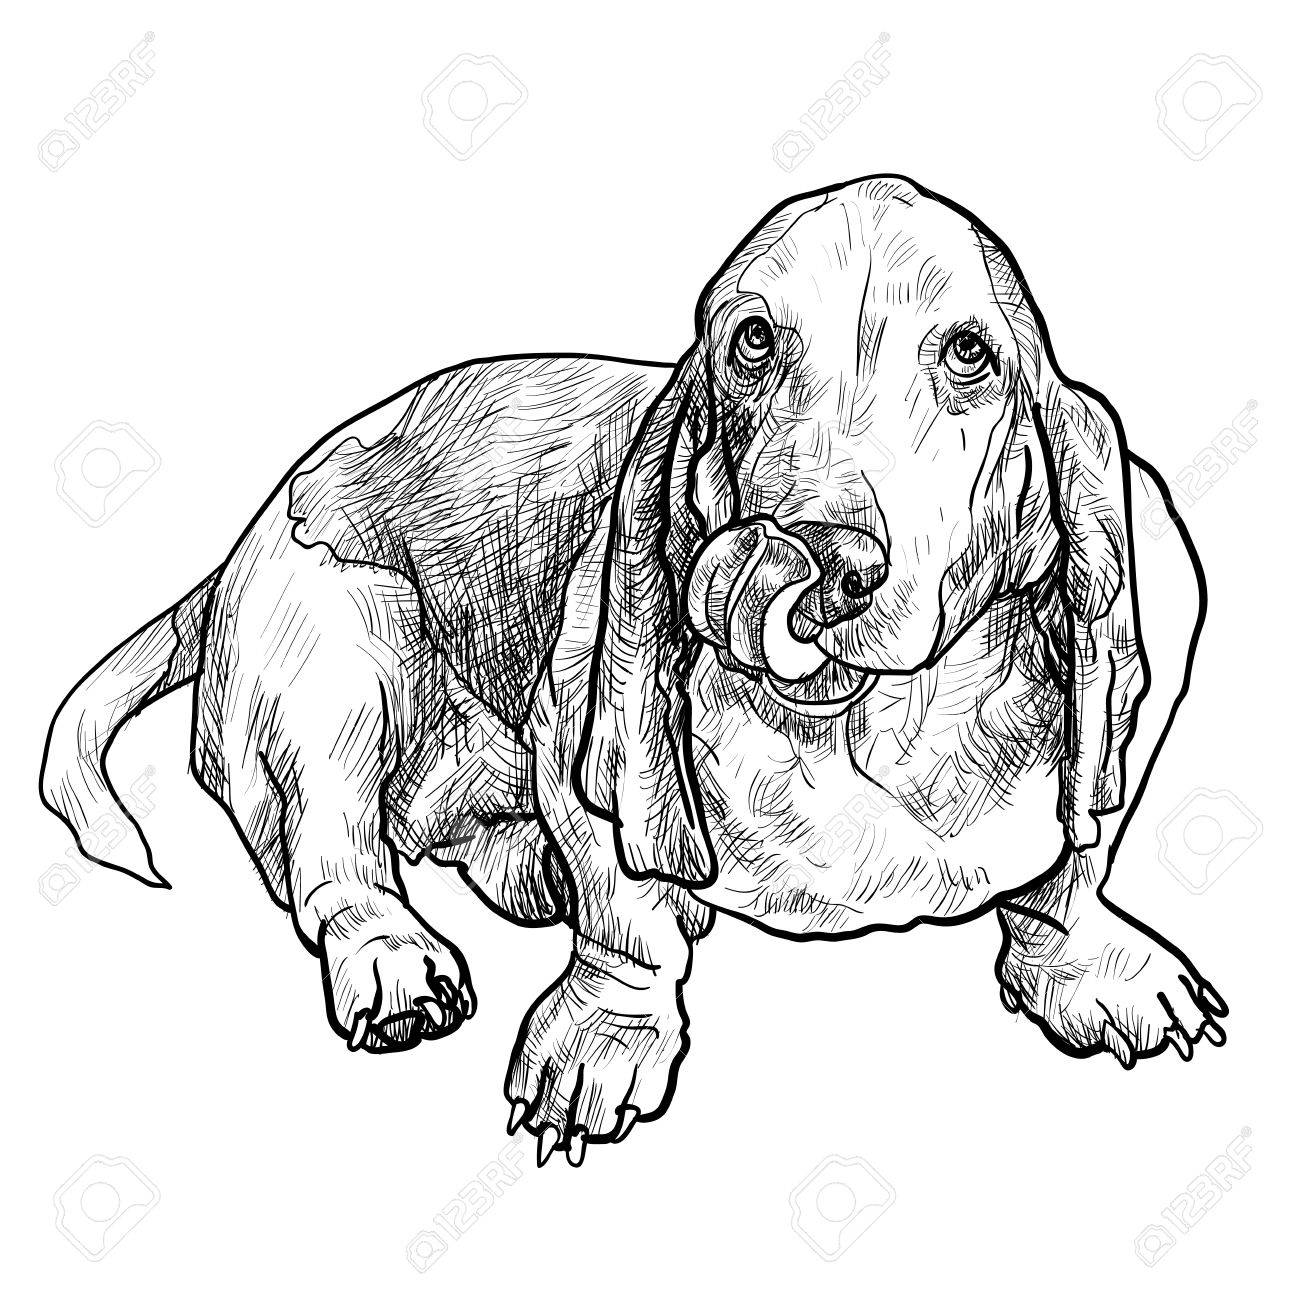 Hound Dog Drawing